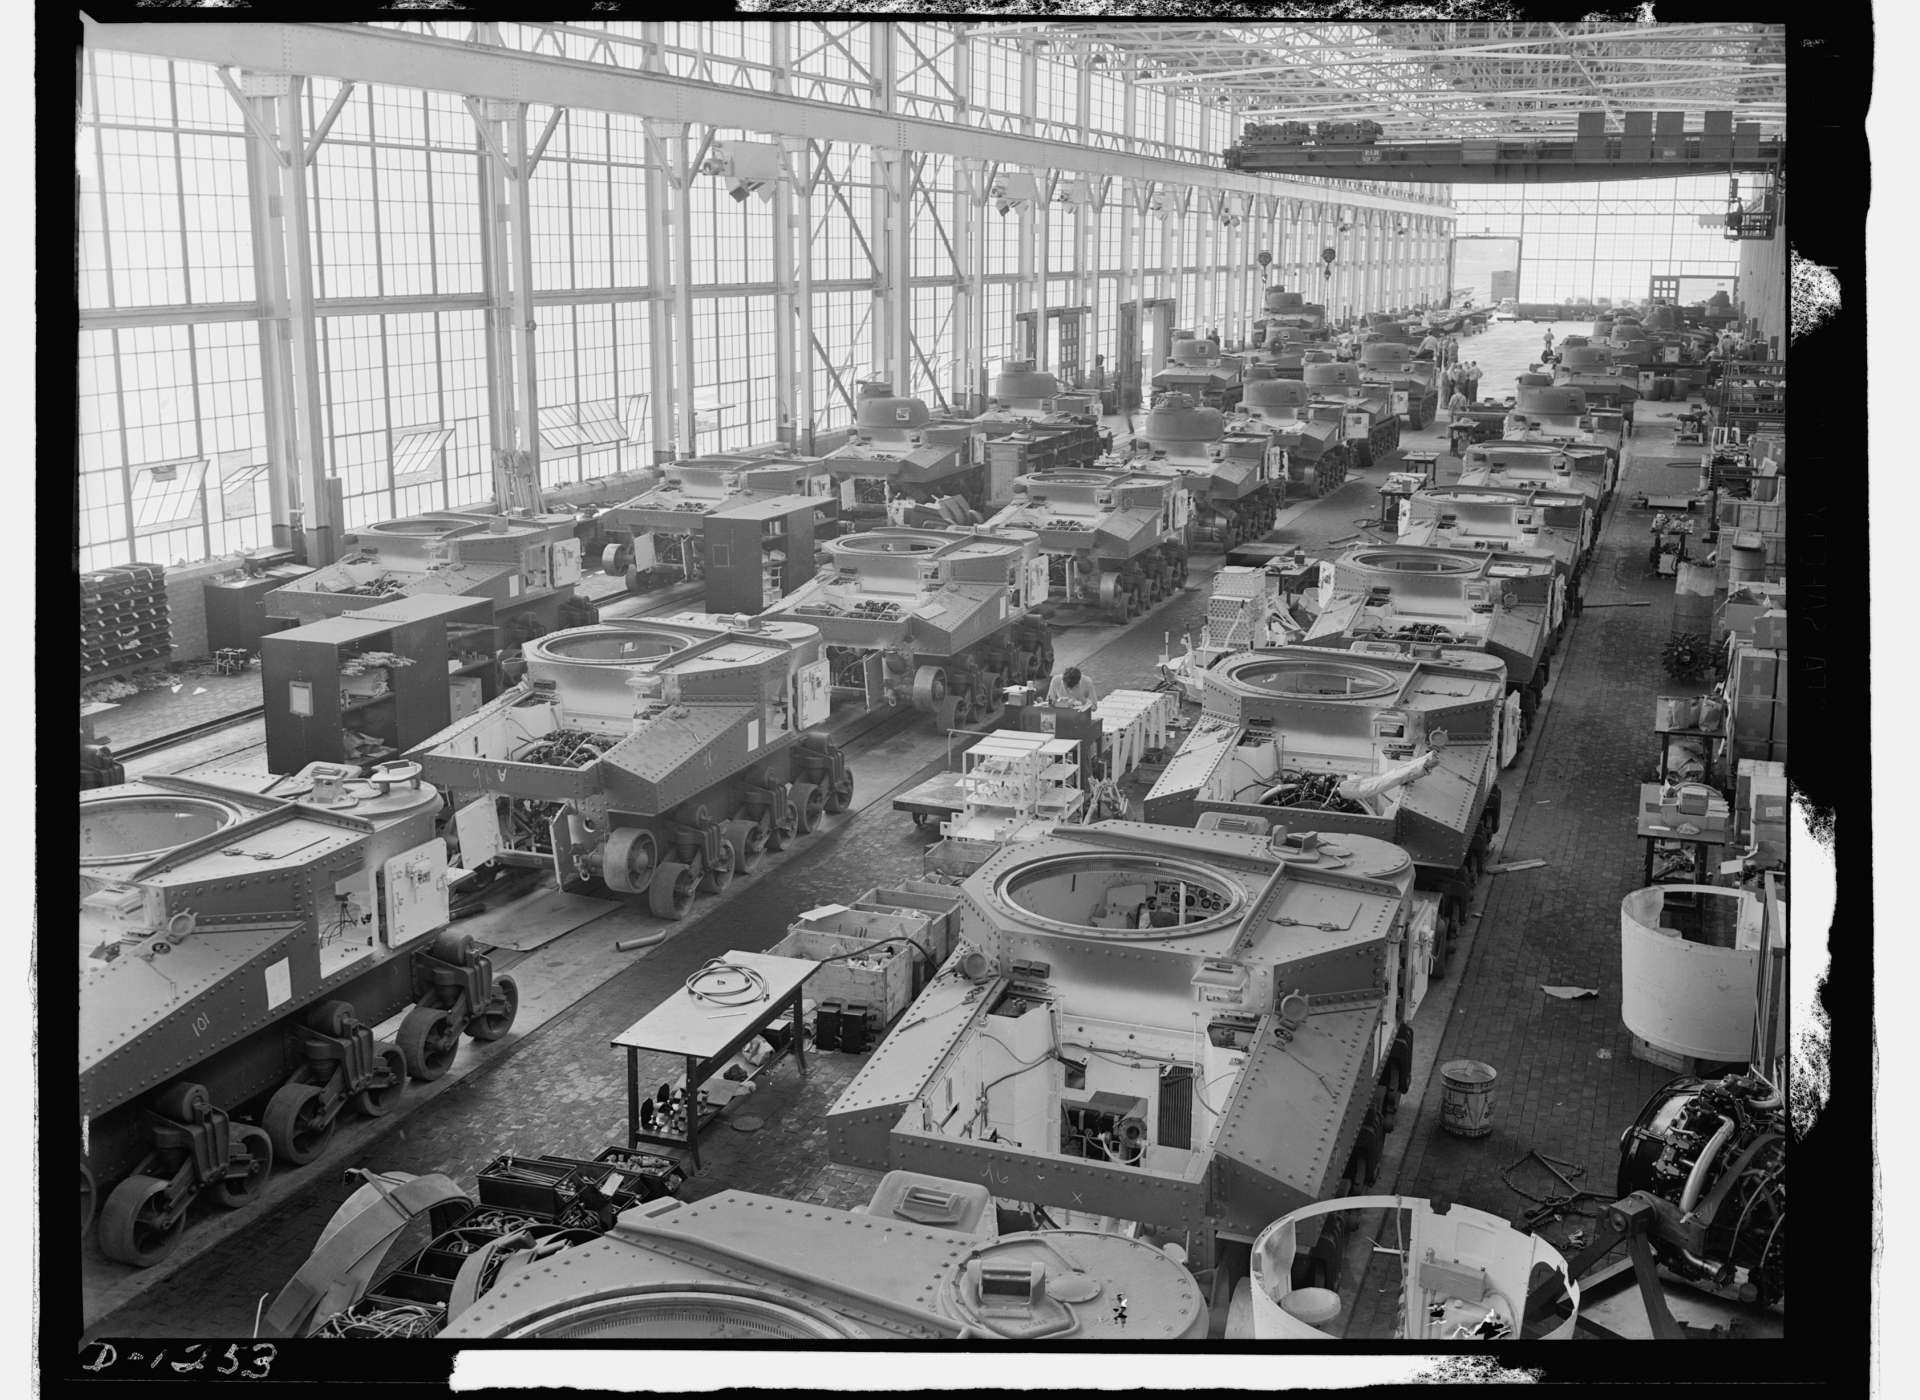 Tanks move along an assembly line that produced cars and trucks before the war at Chrysler in Detroit